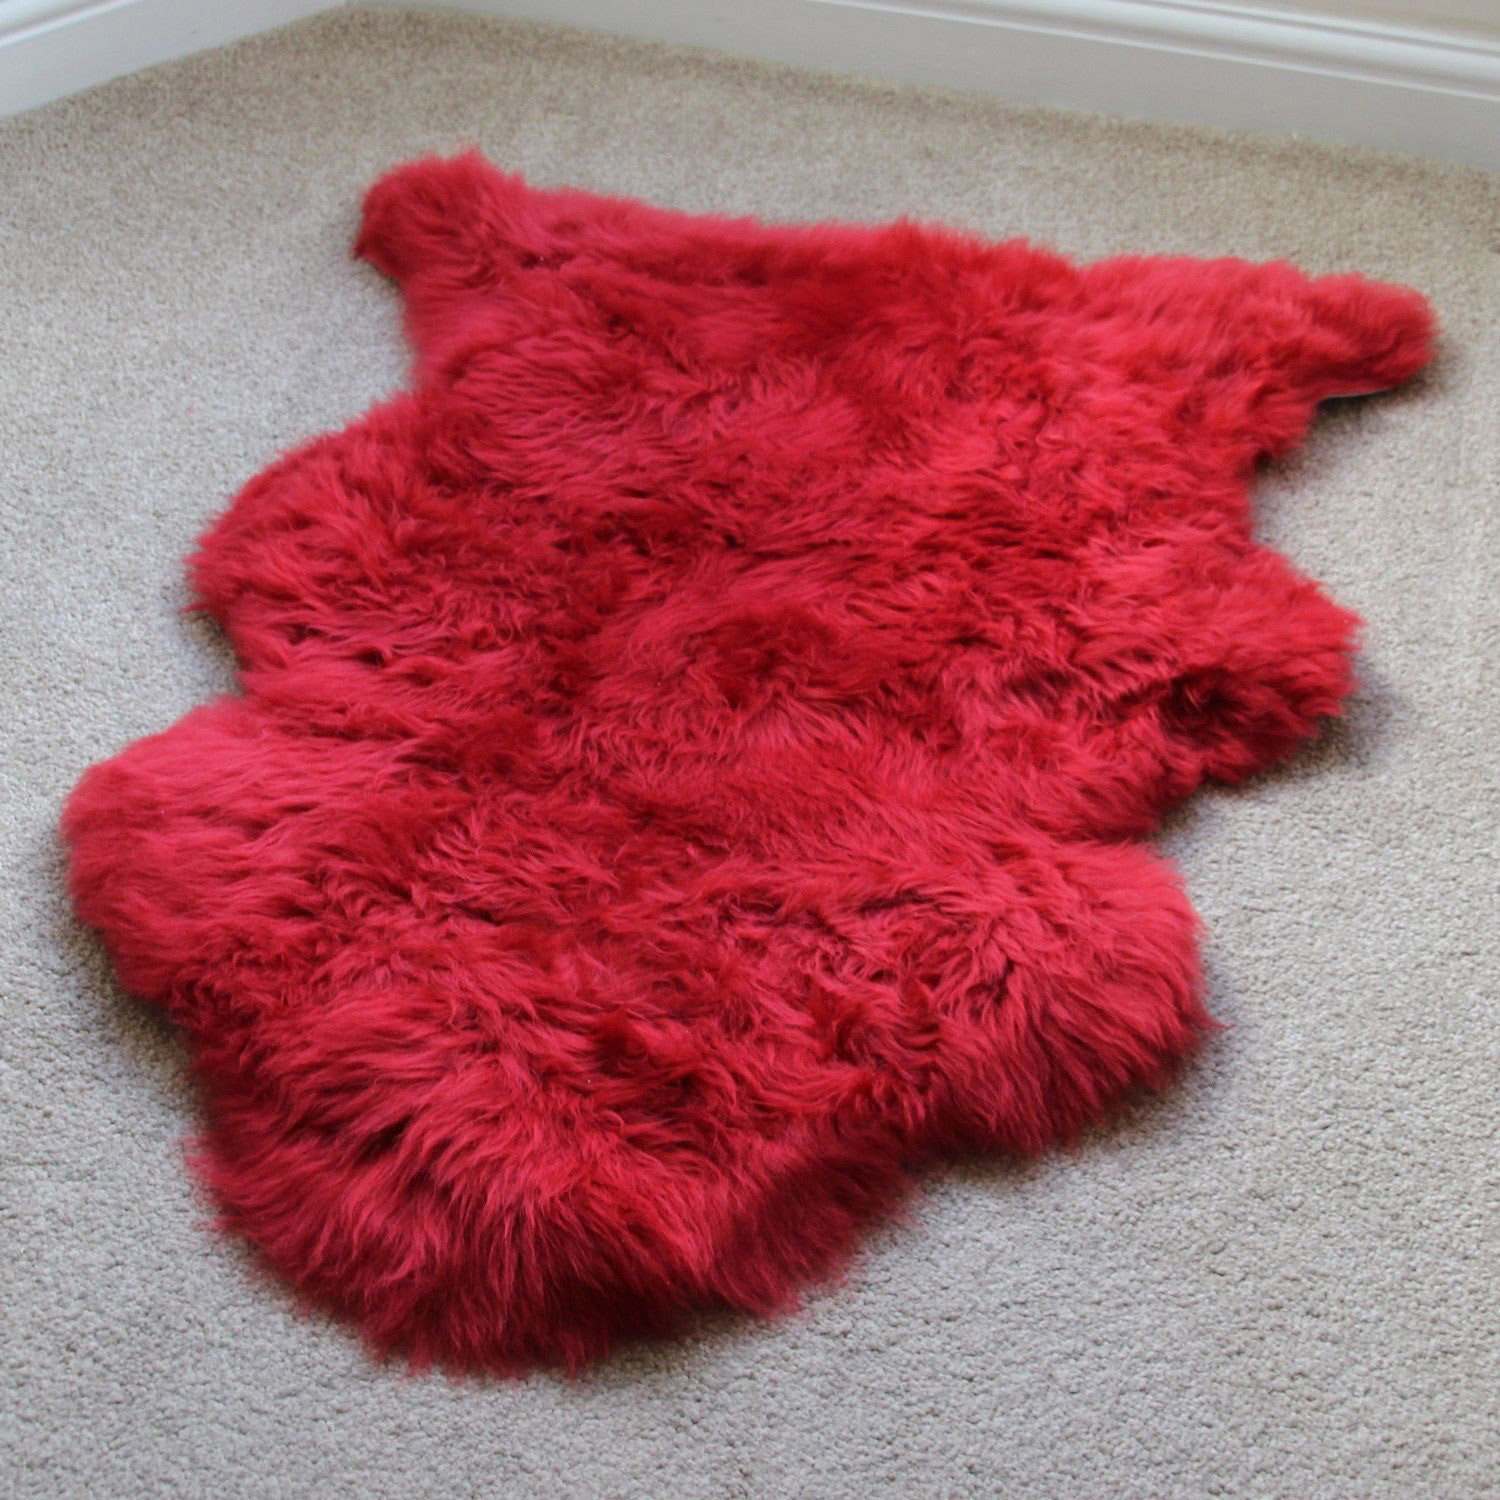 Dyed Red Sheepskin Fur Rug Sheepskin Single Pelt Rug Red